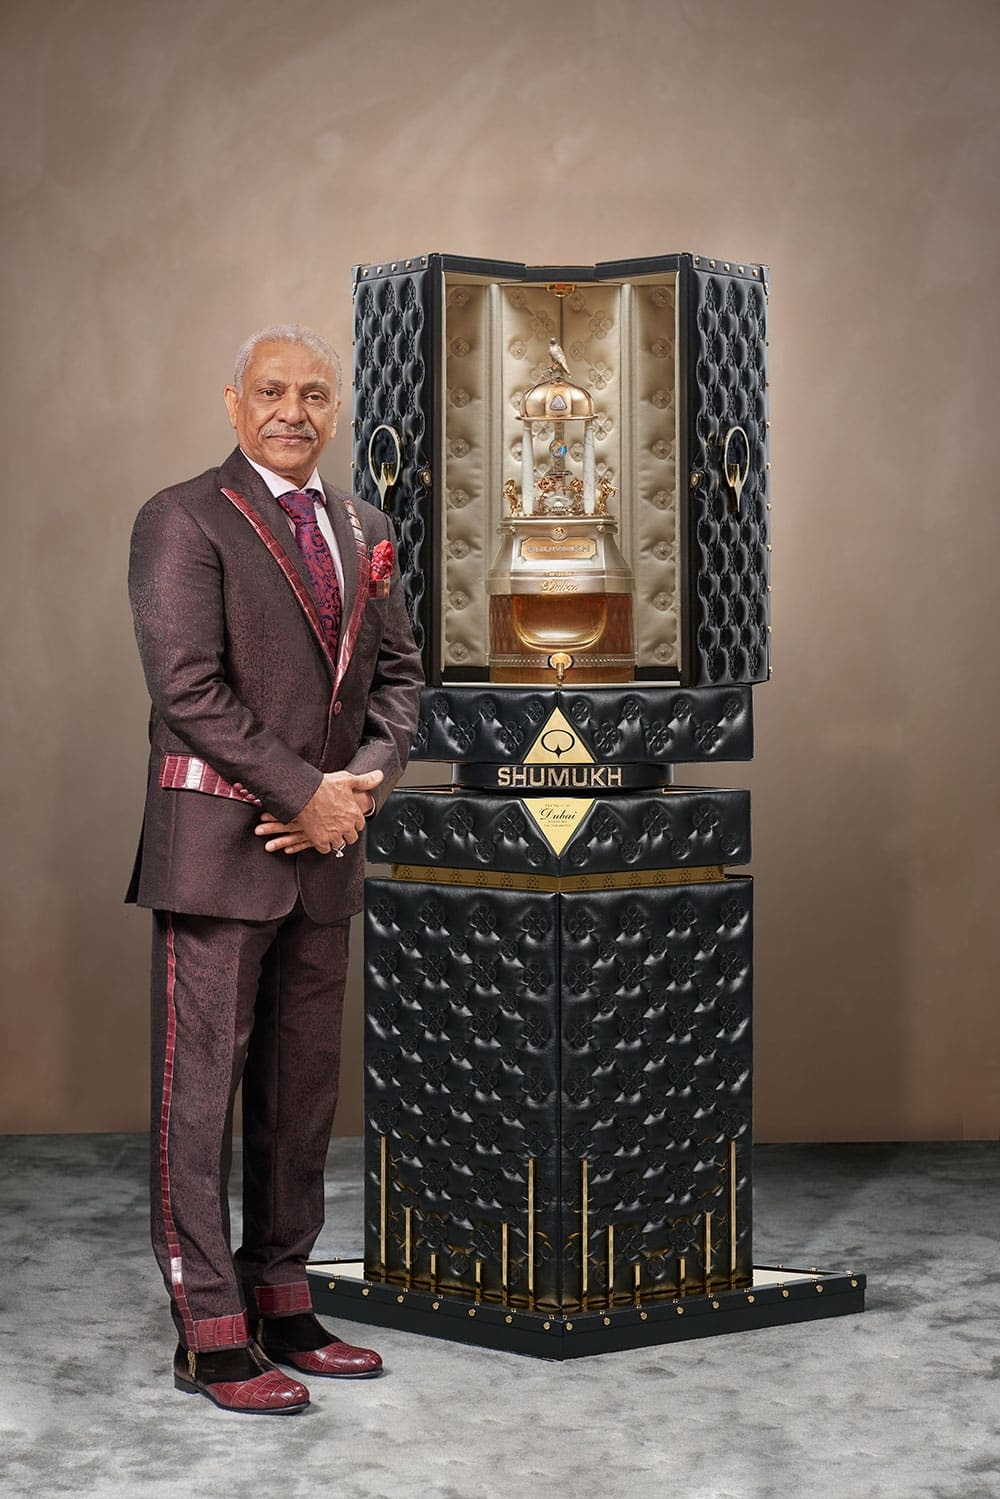 perf1 - World's Most Expensive Perfume Which Costs Ghc2.2 Million Unveiled In Dubai